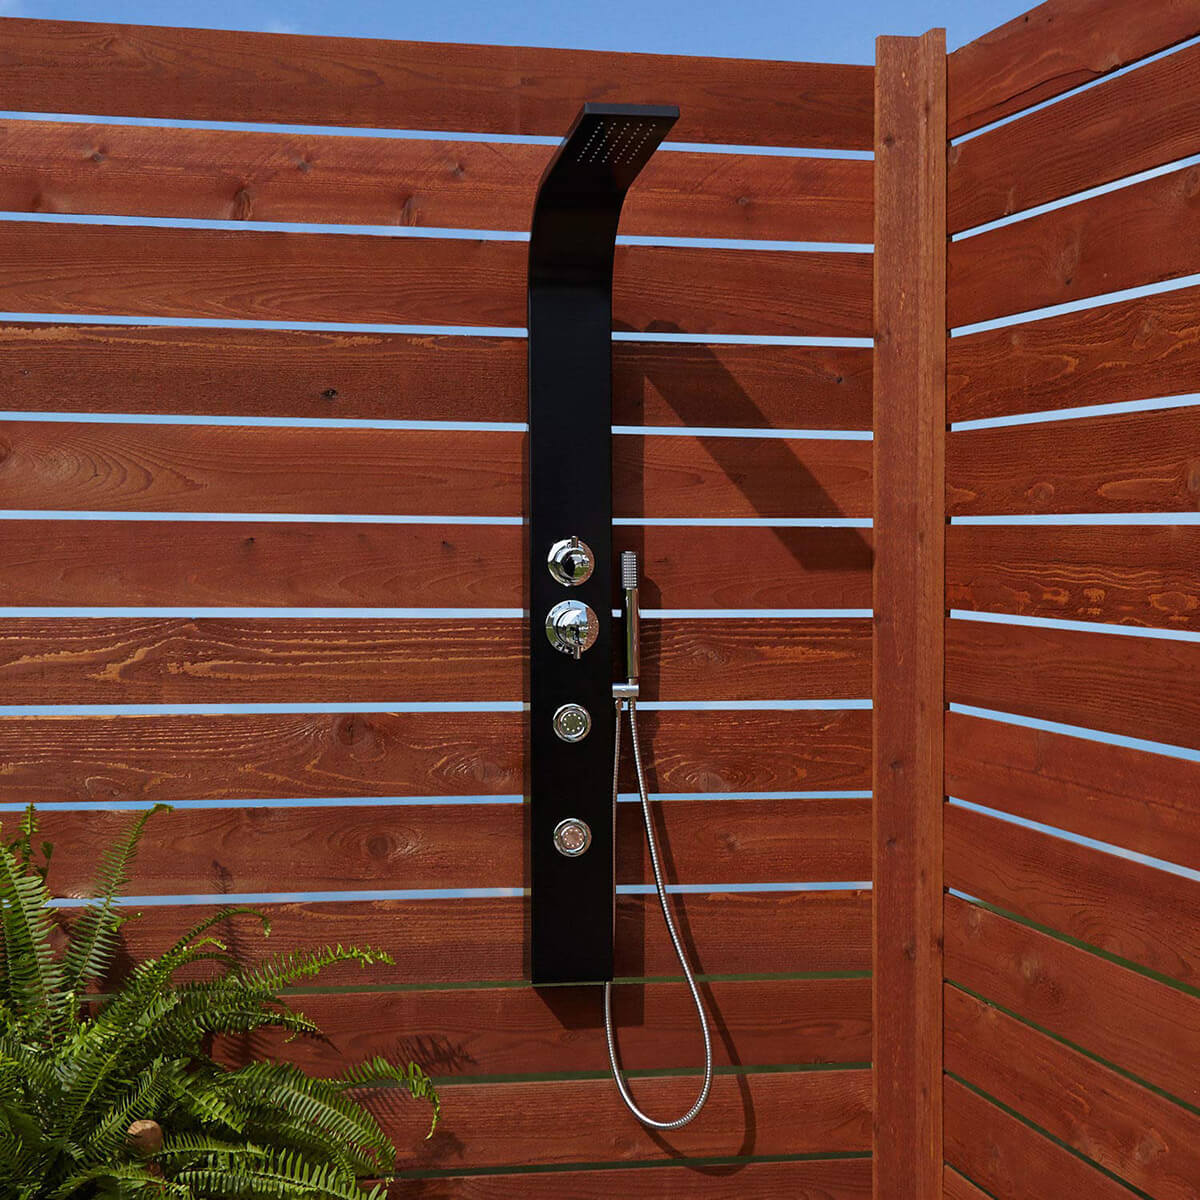 Minimal Wooden Garden Outdoor Shower